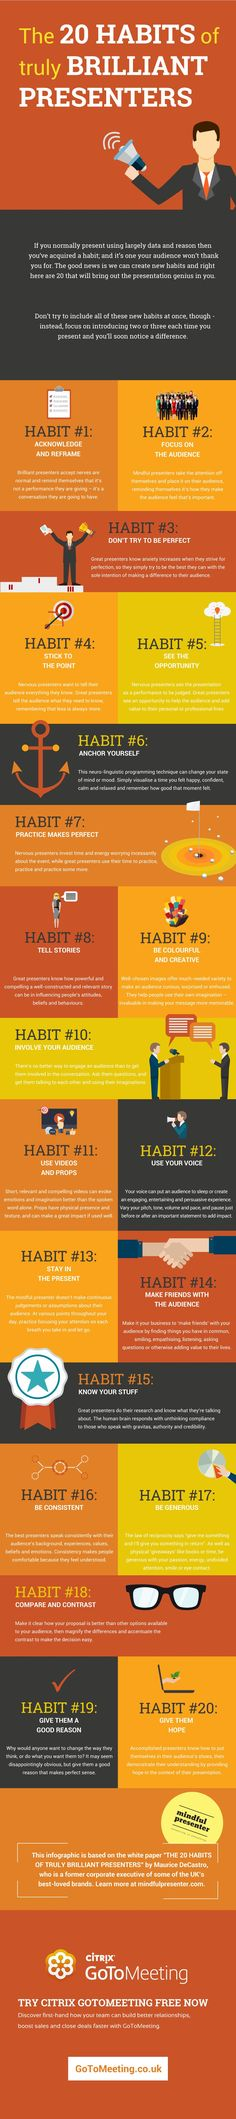 "20 Habits ??f Truly Brilliant Presenters Infographic - <a href=""http://elearninginfographics.com/20-habits-%ce%bff-truly-brilliant-presenters-infographic/"" rel=""nofollow"" target=""_blank"">elearninginfograp...</a>"